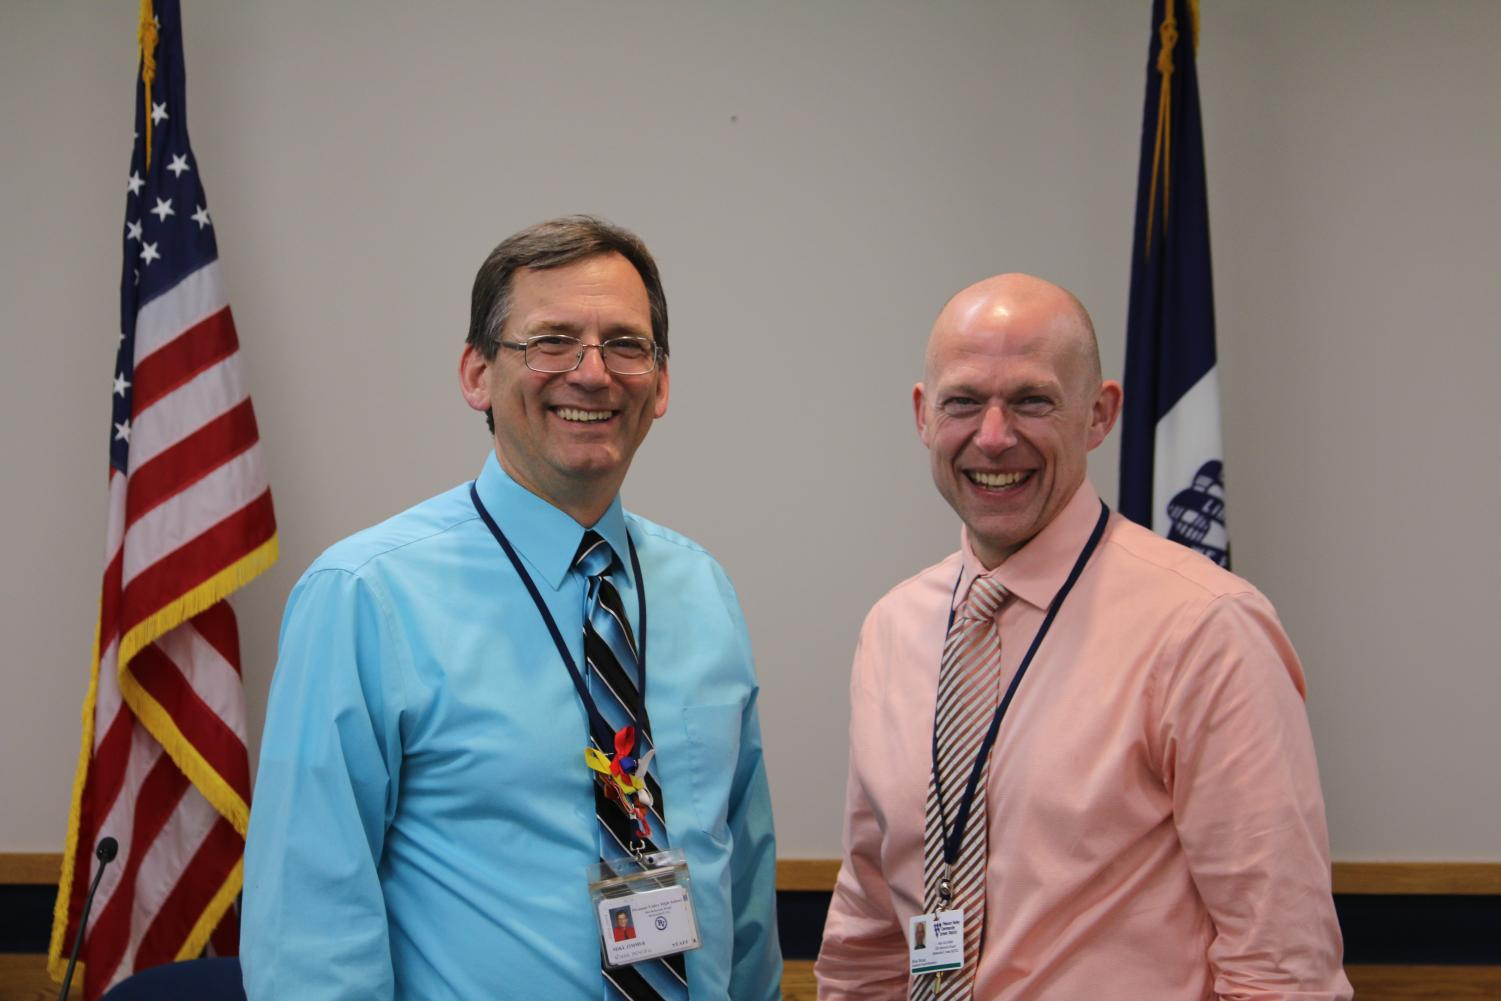 Mike Zimmer, left, is appointed Pleasant Valley's new Director of Secondary Education. He and Brian Strusz, the district's newly appointed superintendent pictured at right, will begin their new roles this summer.